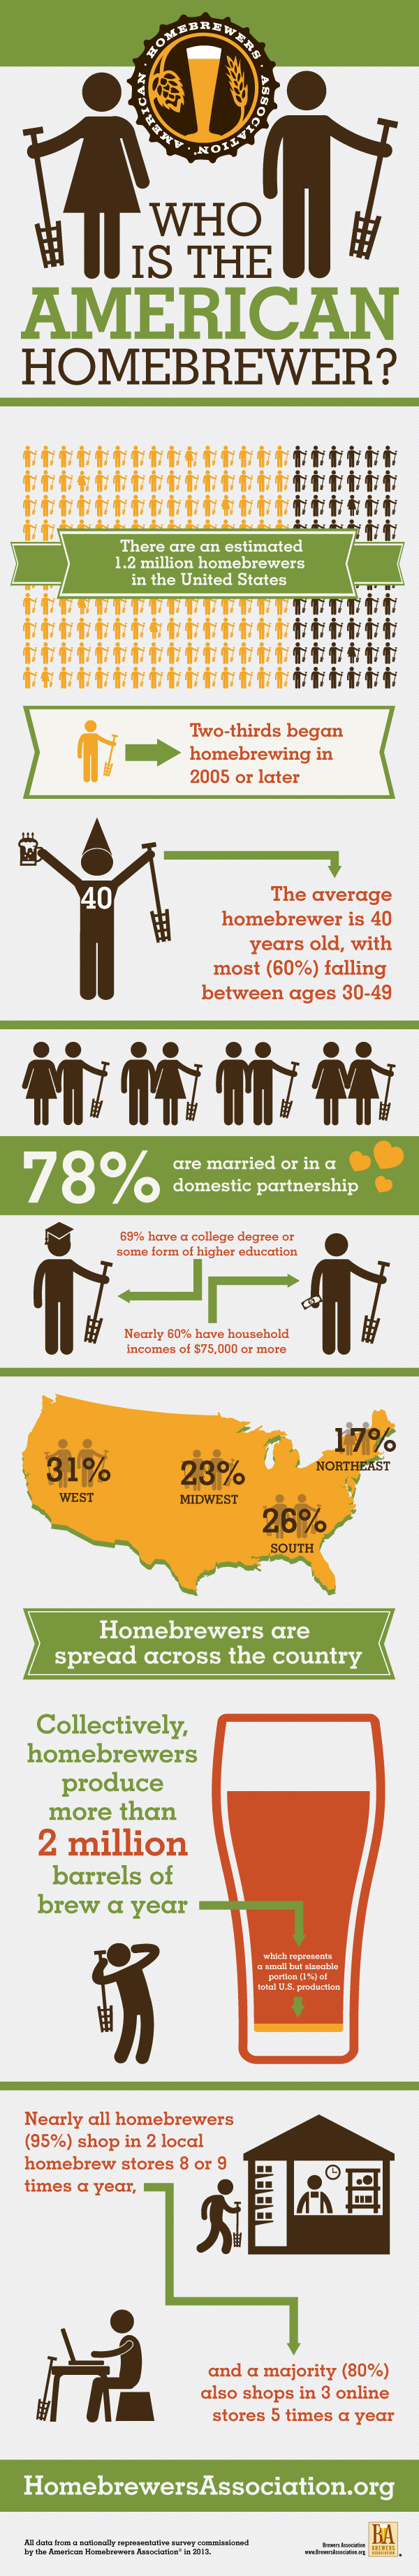 2013 Homebrewer Demographics Infographic